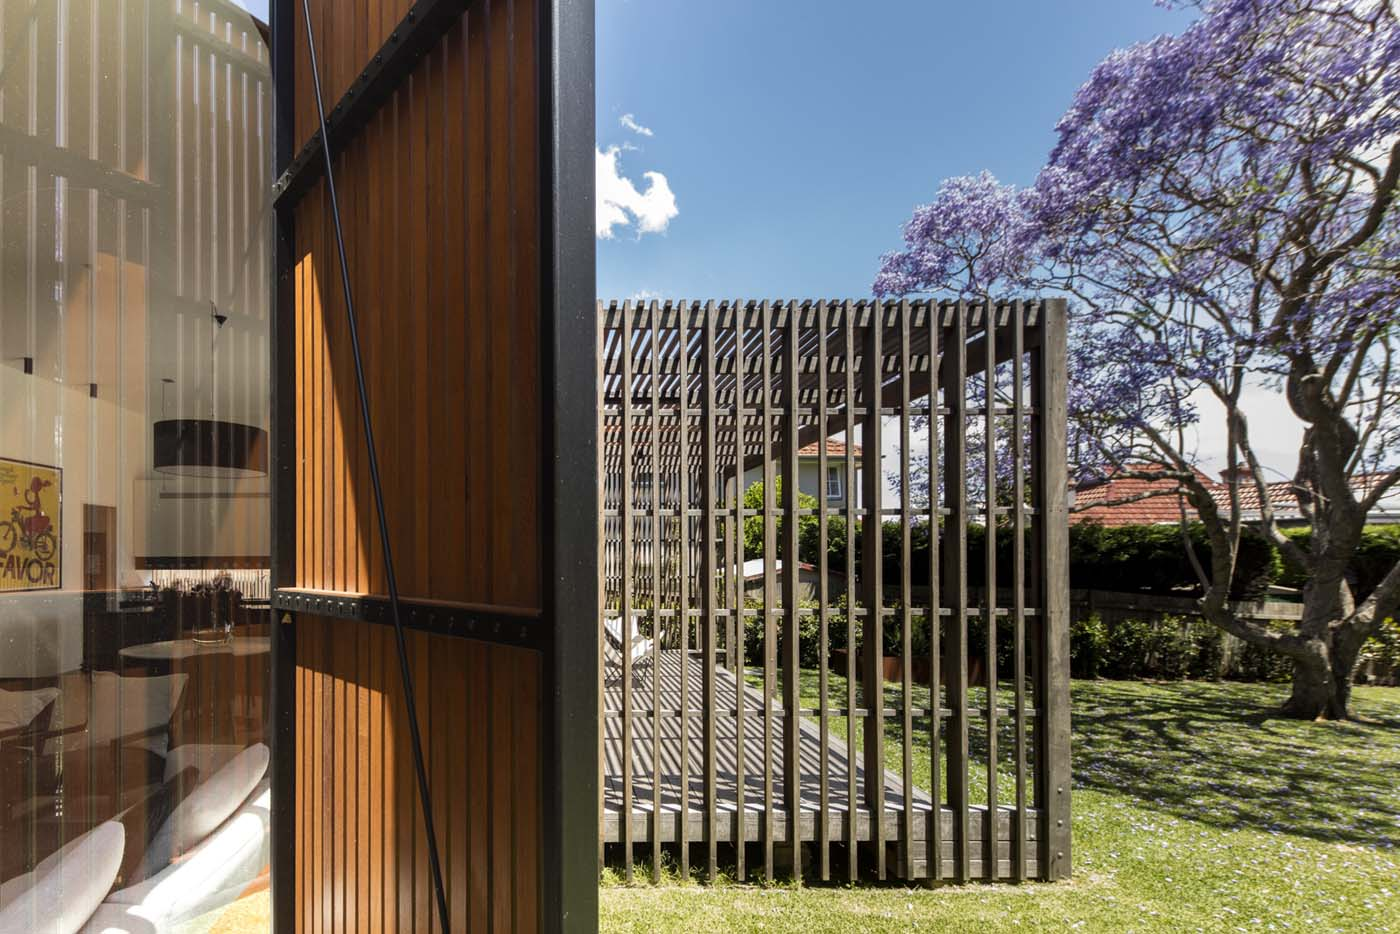 Sung Dobson house by Sam Crawford Architects, Sydney. Spotted gum pergola.